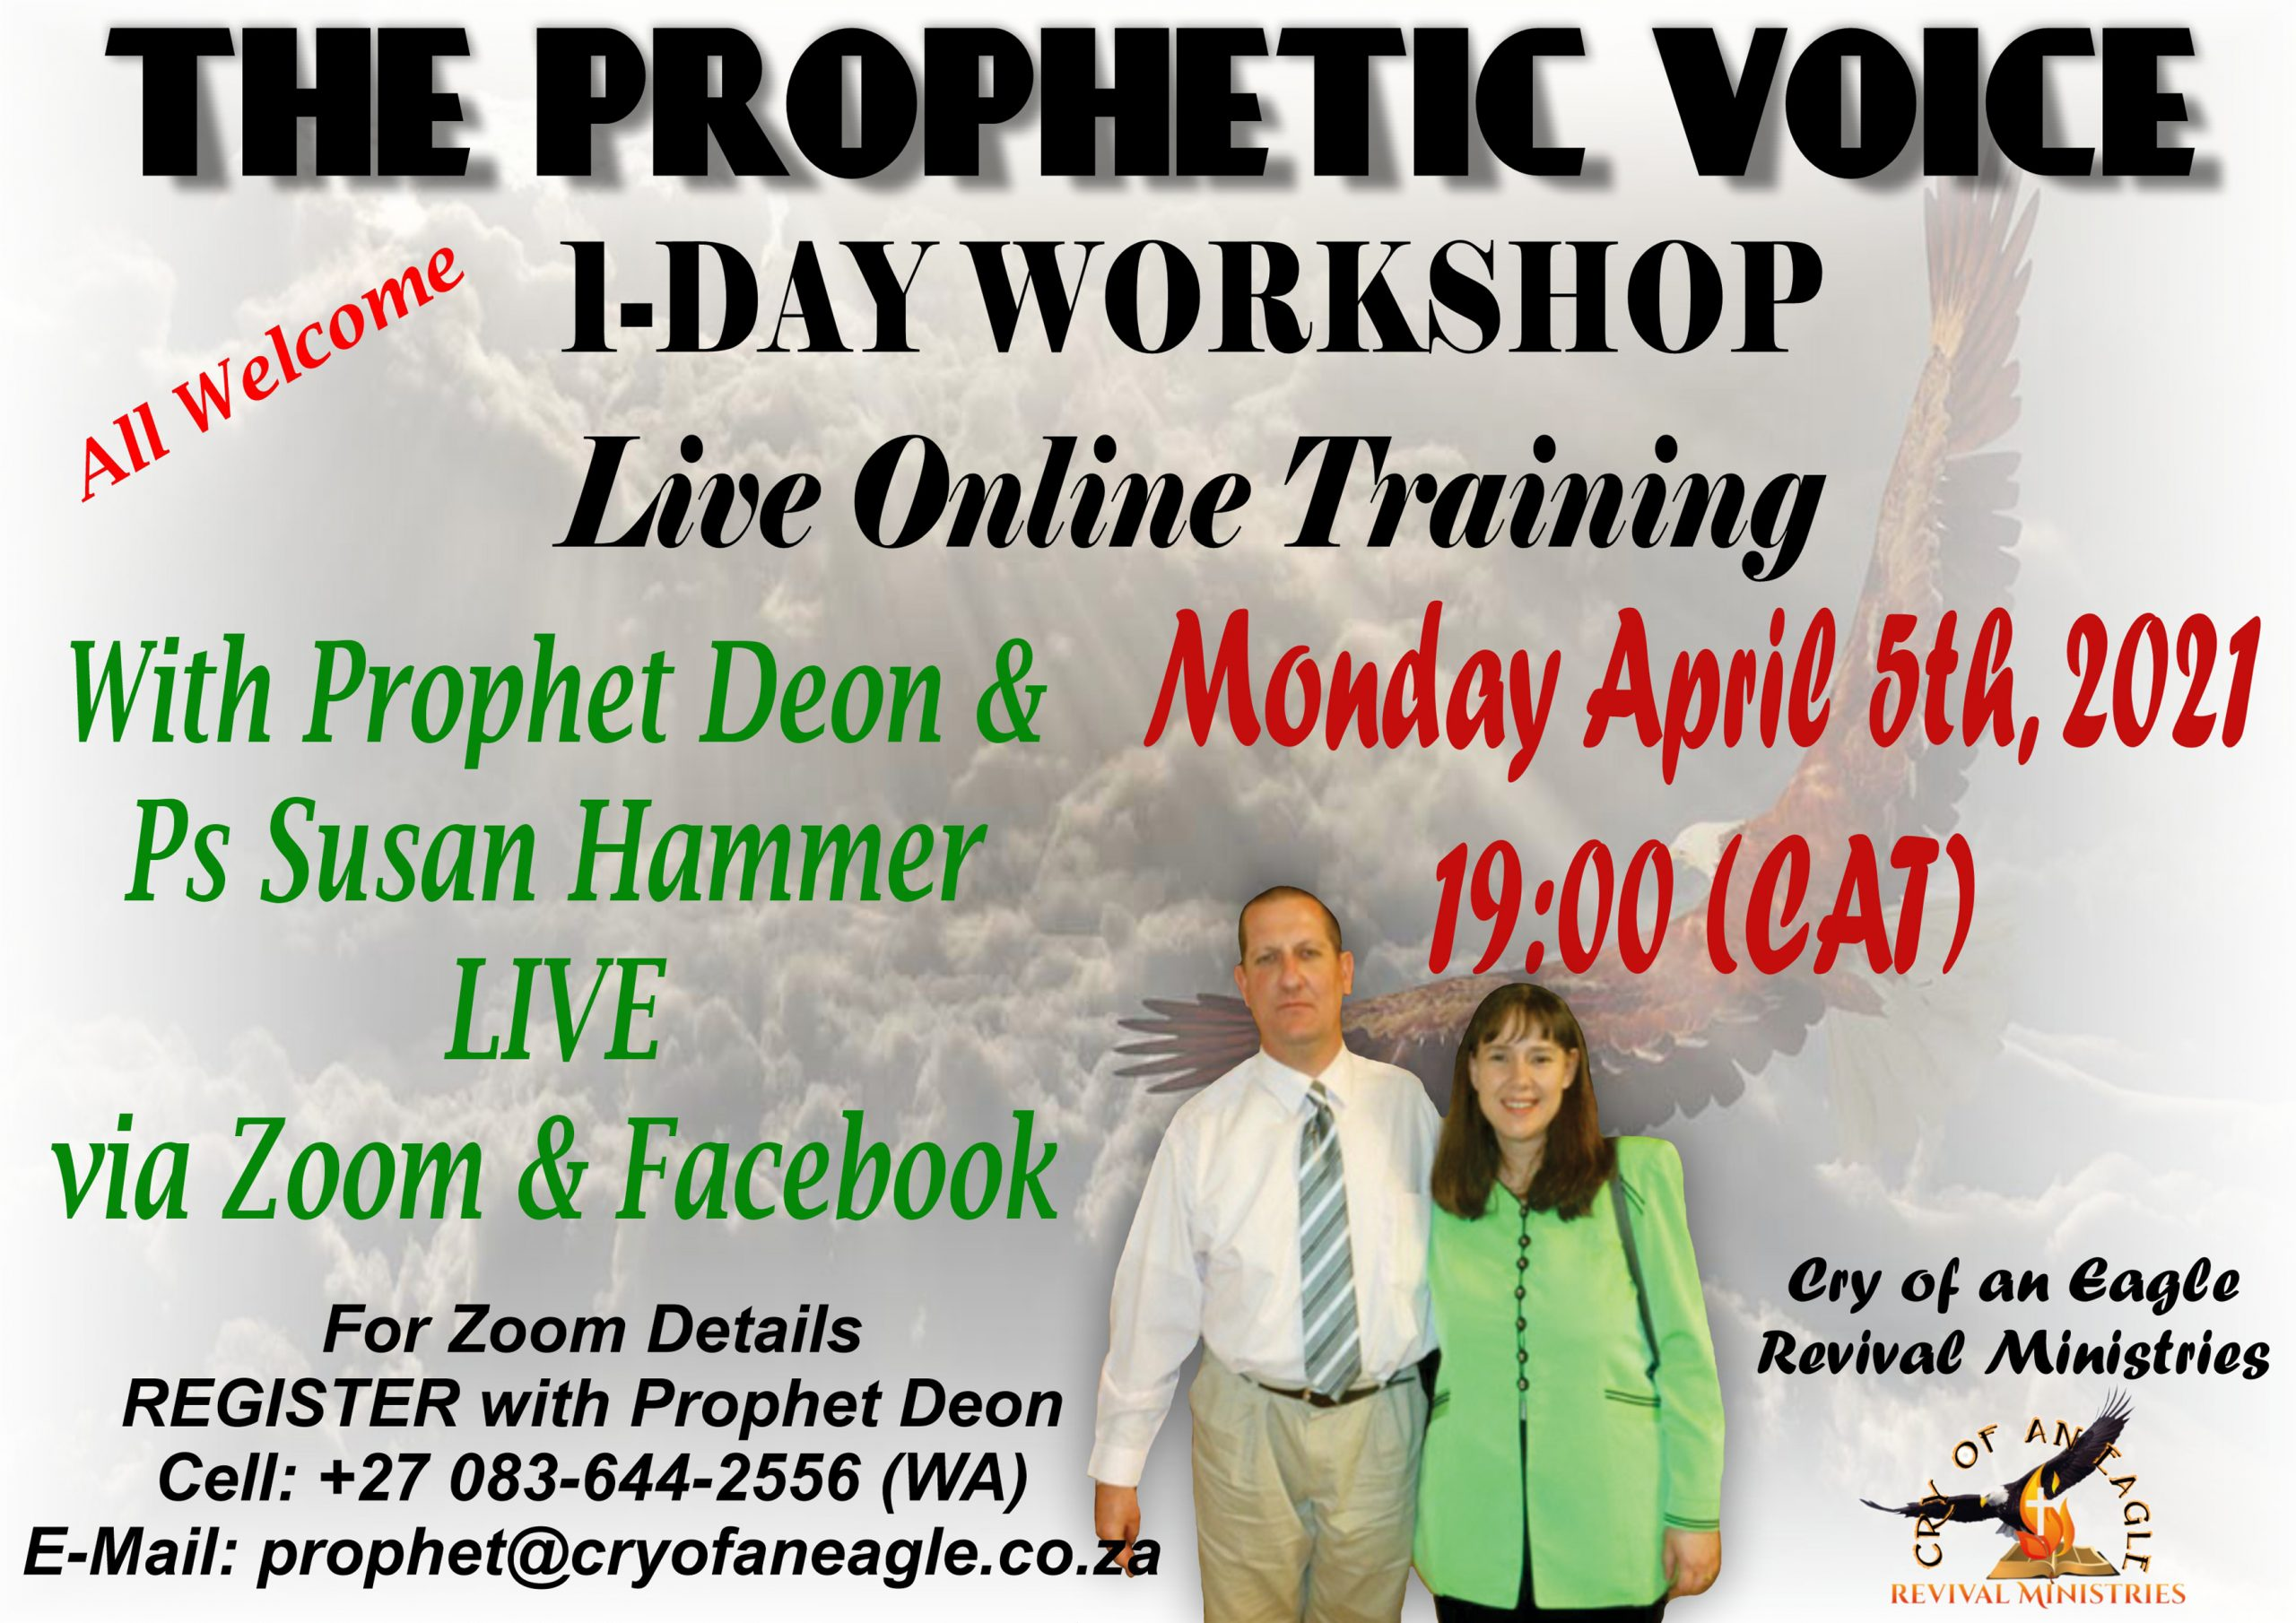 Online Training to Start on Monday April 5th, 2021